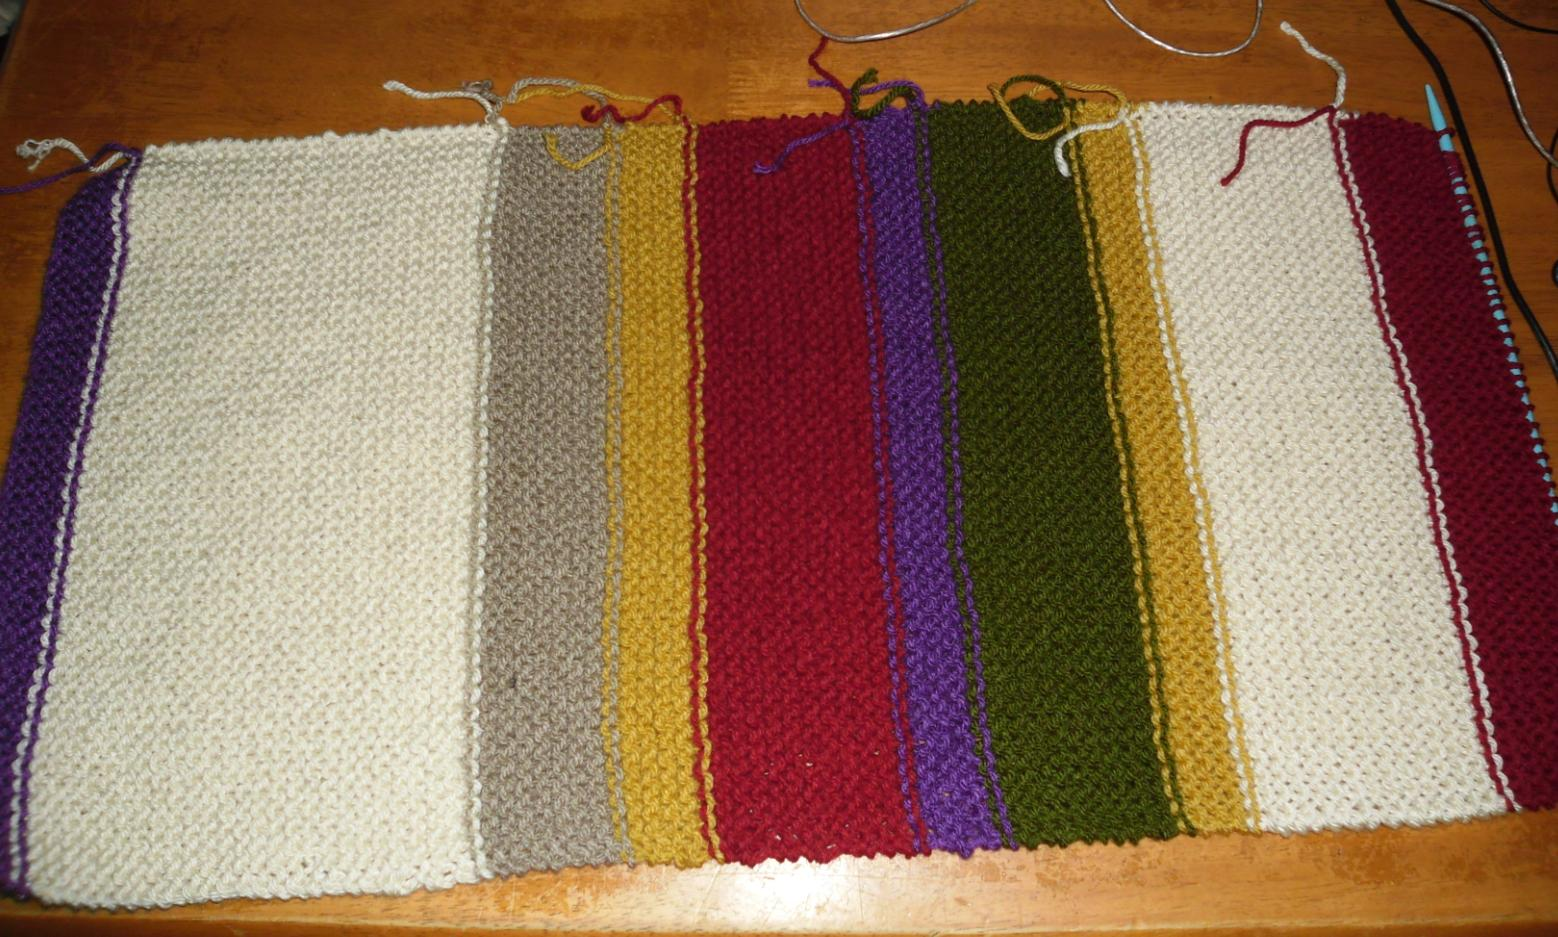 Blooming Lovely: Work In Progress - Doctor Who Scarf (part 1)